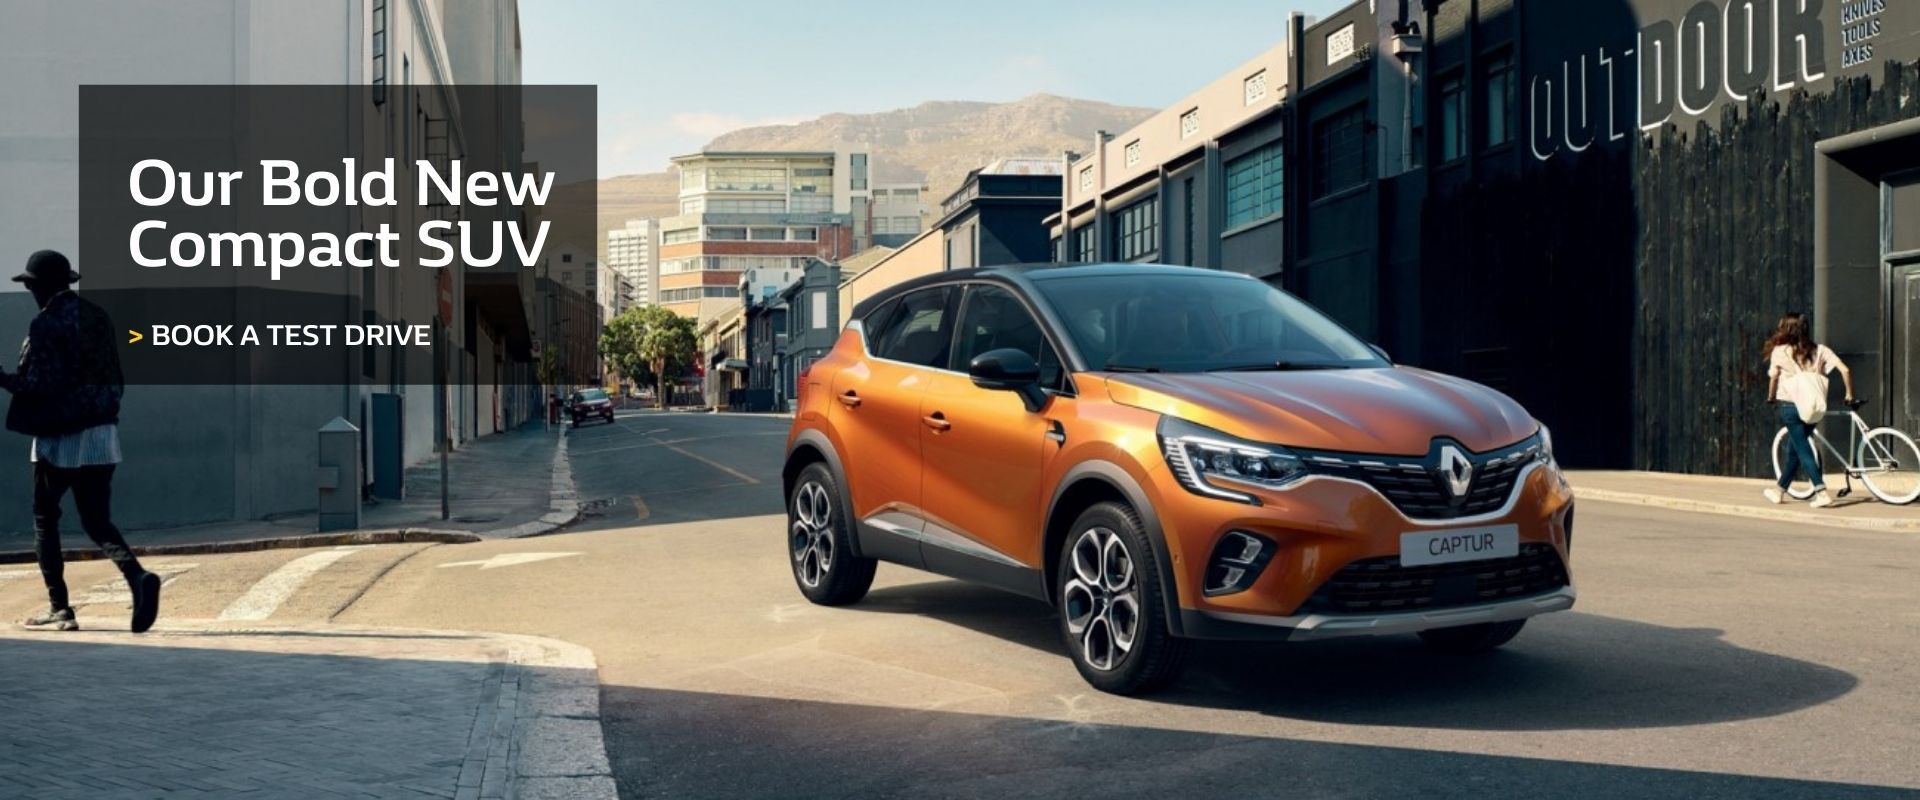 Renault Captur - Our Bold New Compact SUV - Book A Test Drive at Metro Renault